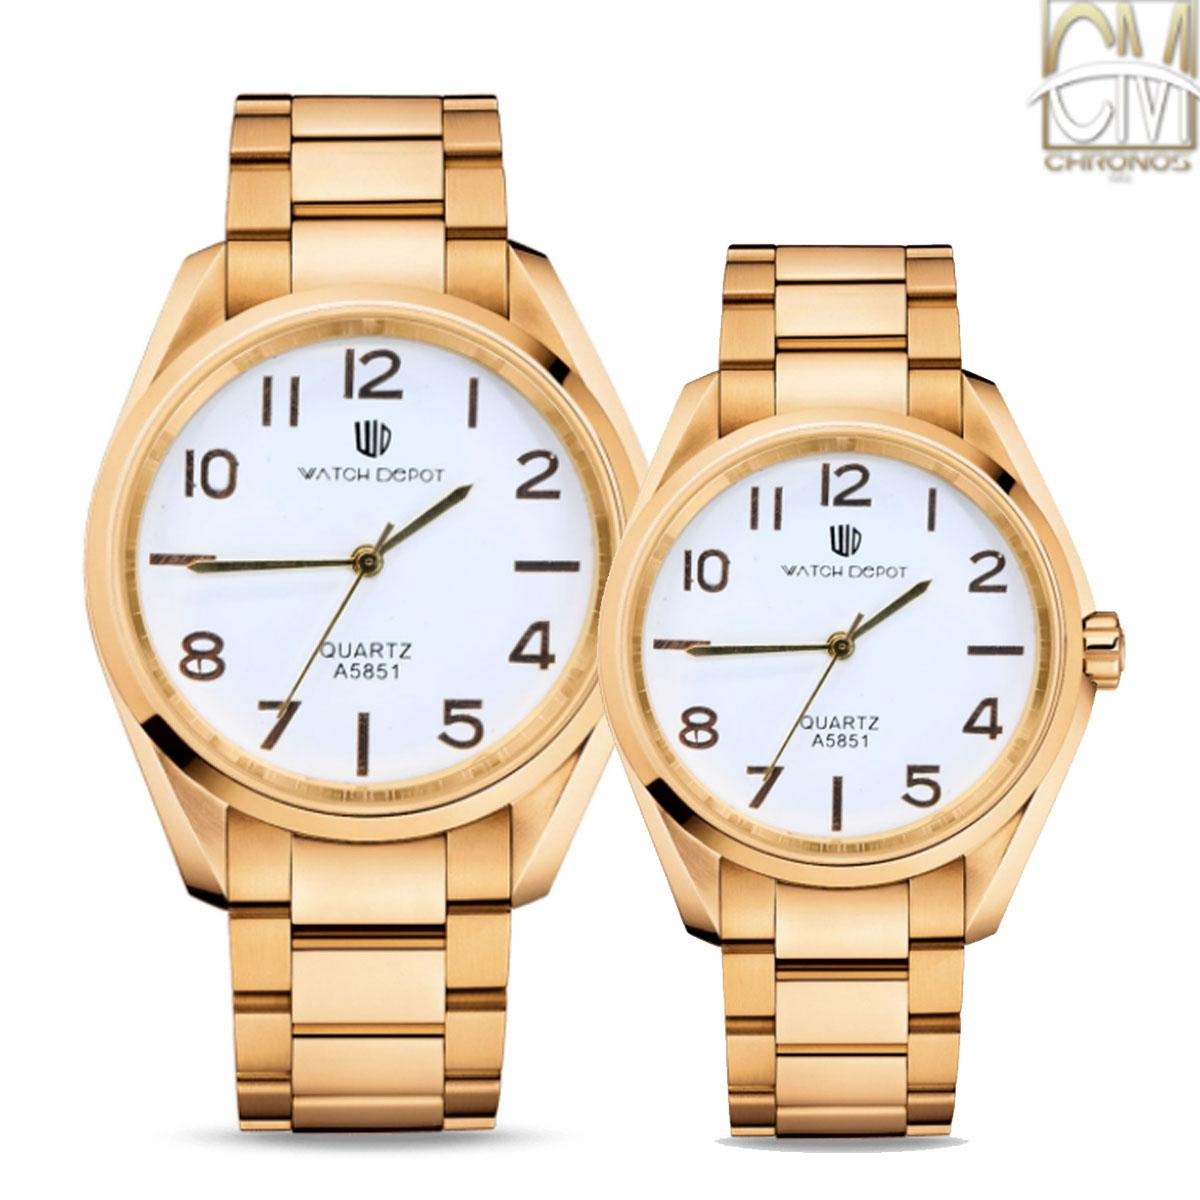 Chronos MNL WD-A5851 Analog Couple Watch Stainless Steel Gold/White